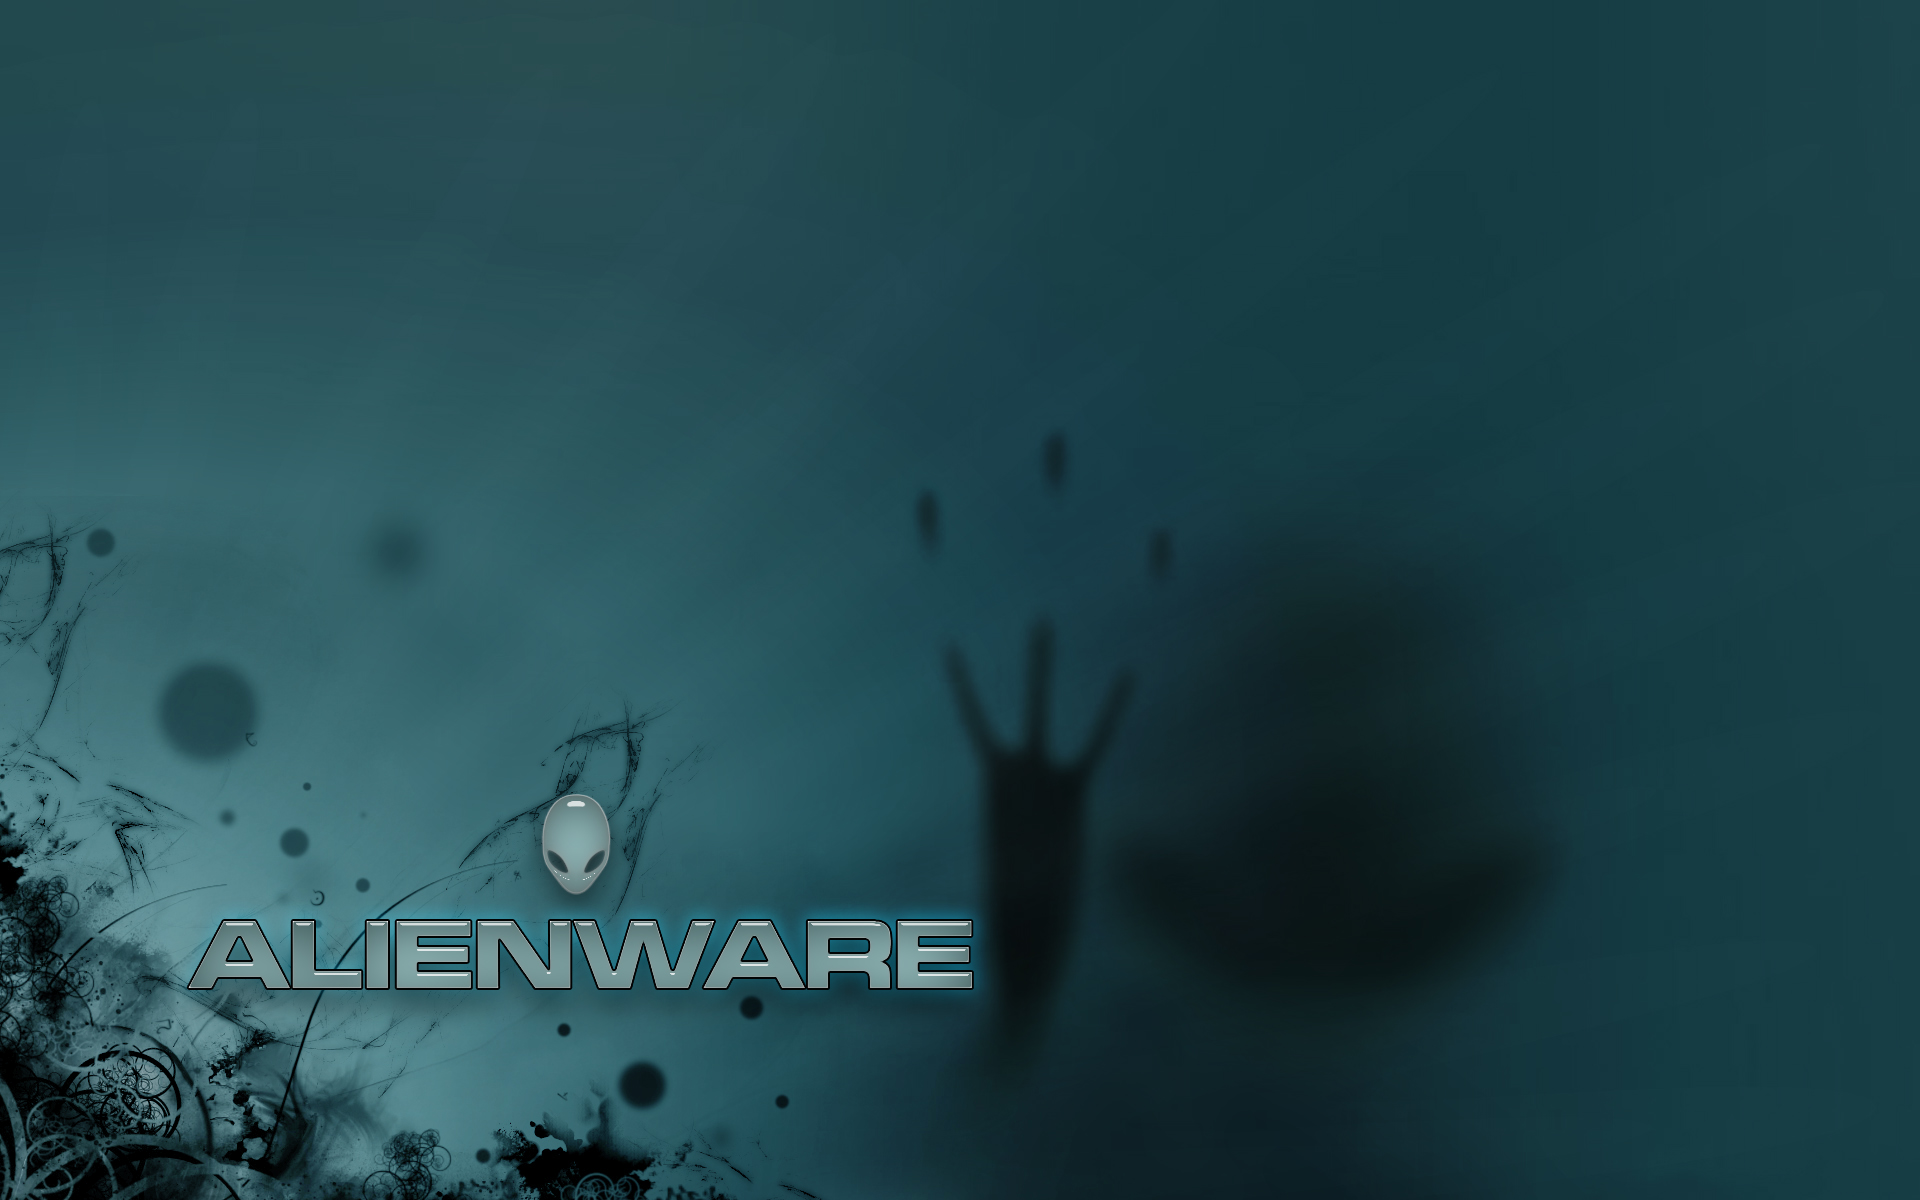 49 Alienware Wallpaper 72 Dpi On Wallpapersafari